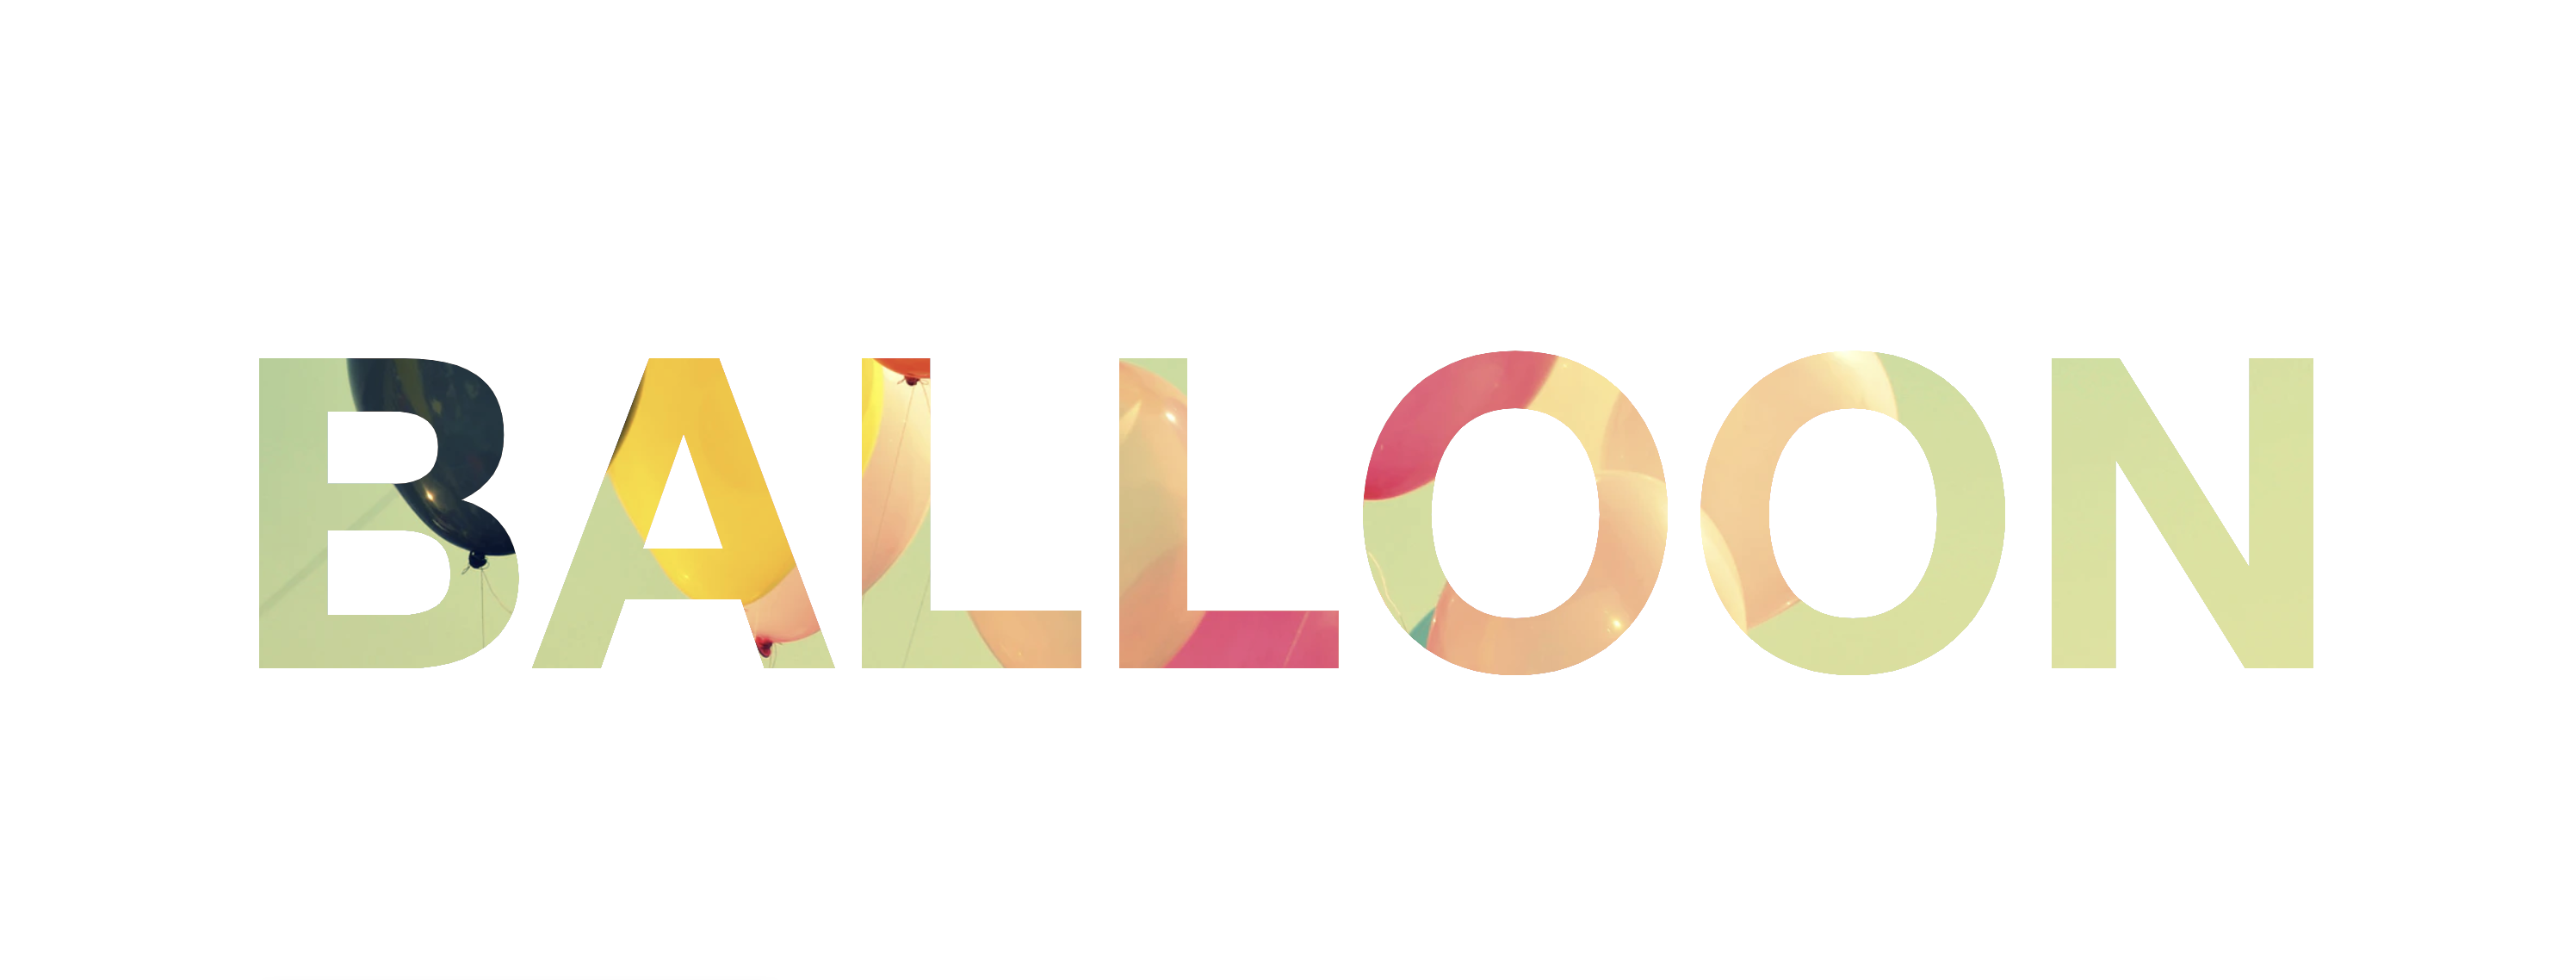 CSS text cut out